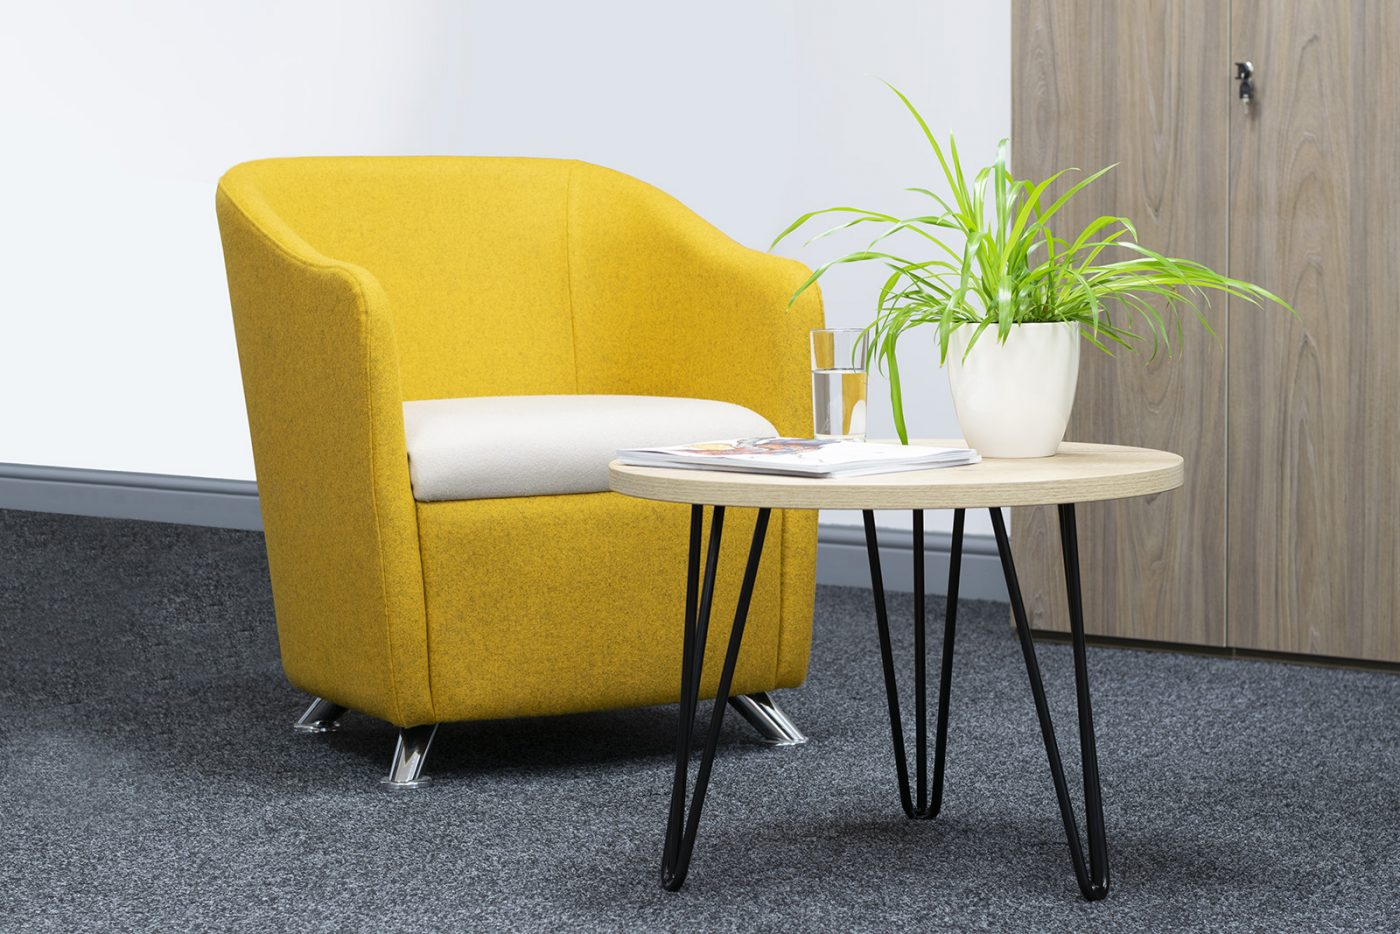 ciruclar coffee table, hairpin leg table, coffee table, modern table, reception table, breakout table, affordable table, cheap table